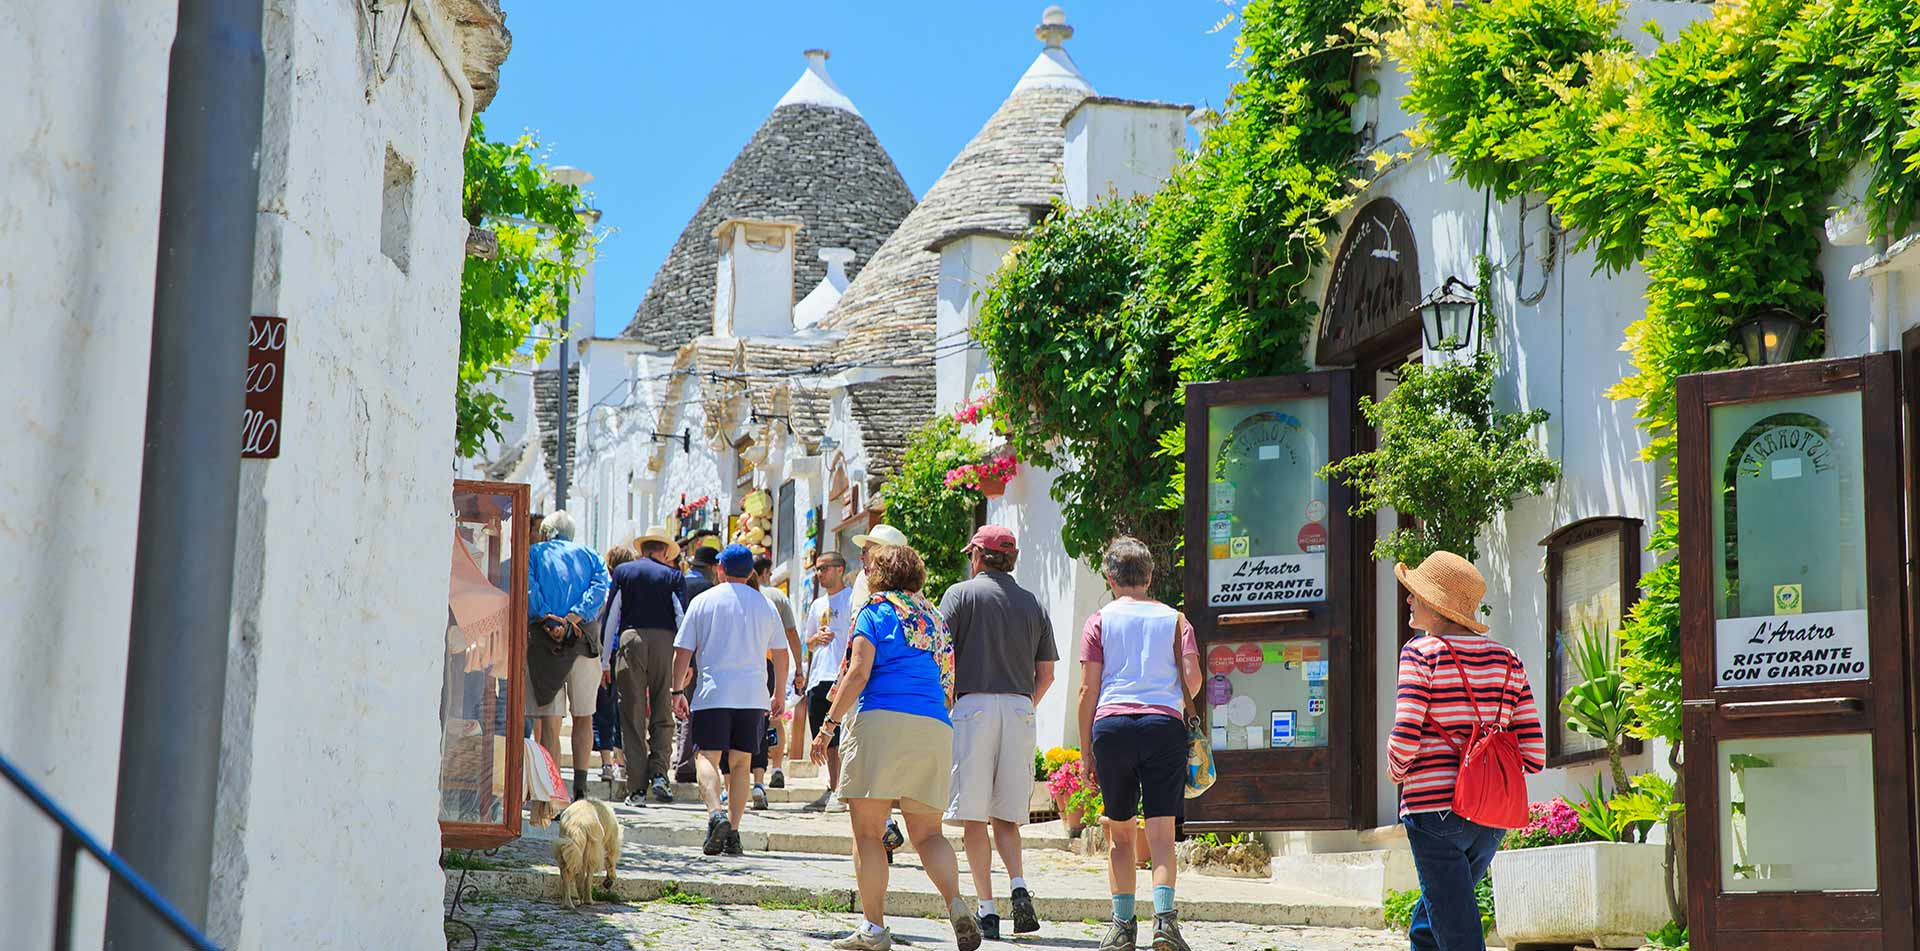 Guided tour in Alberobello, Italy